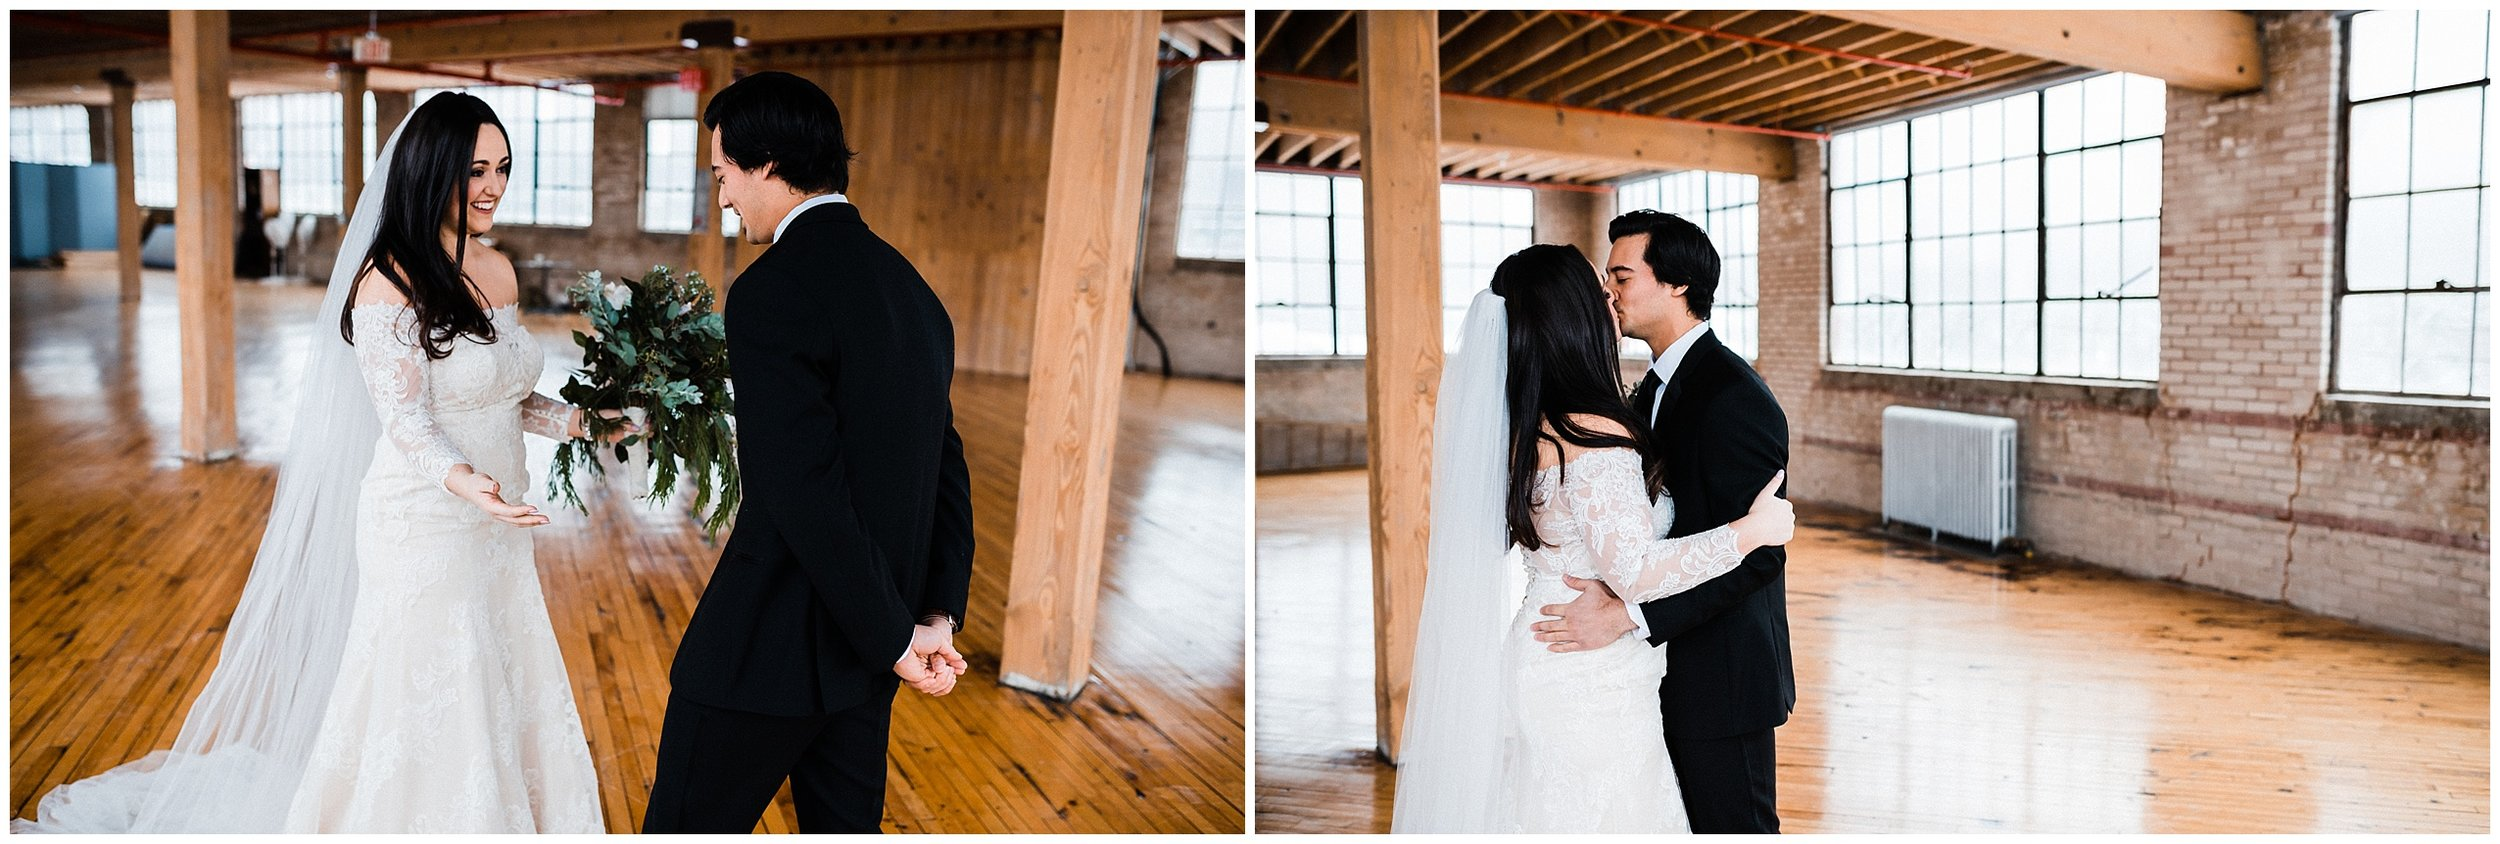 Josh + Marissa | Just Married_2066.jpg